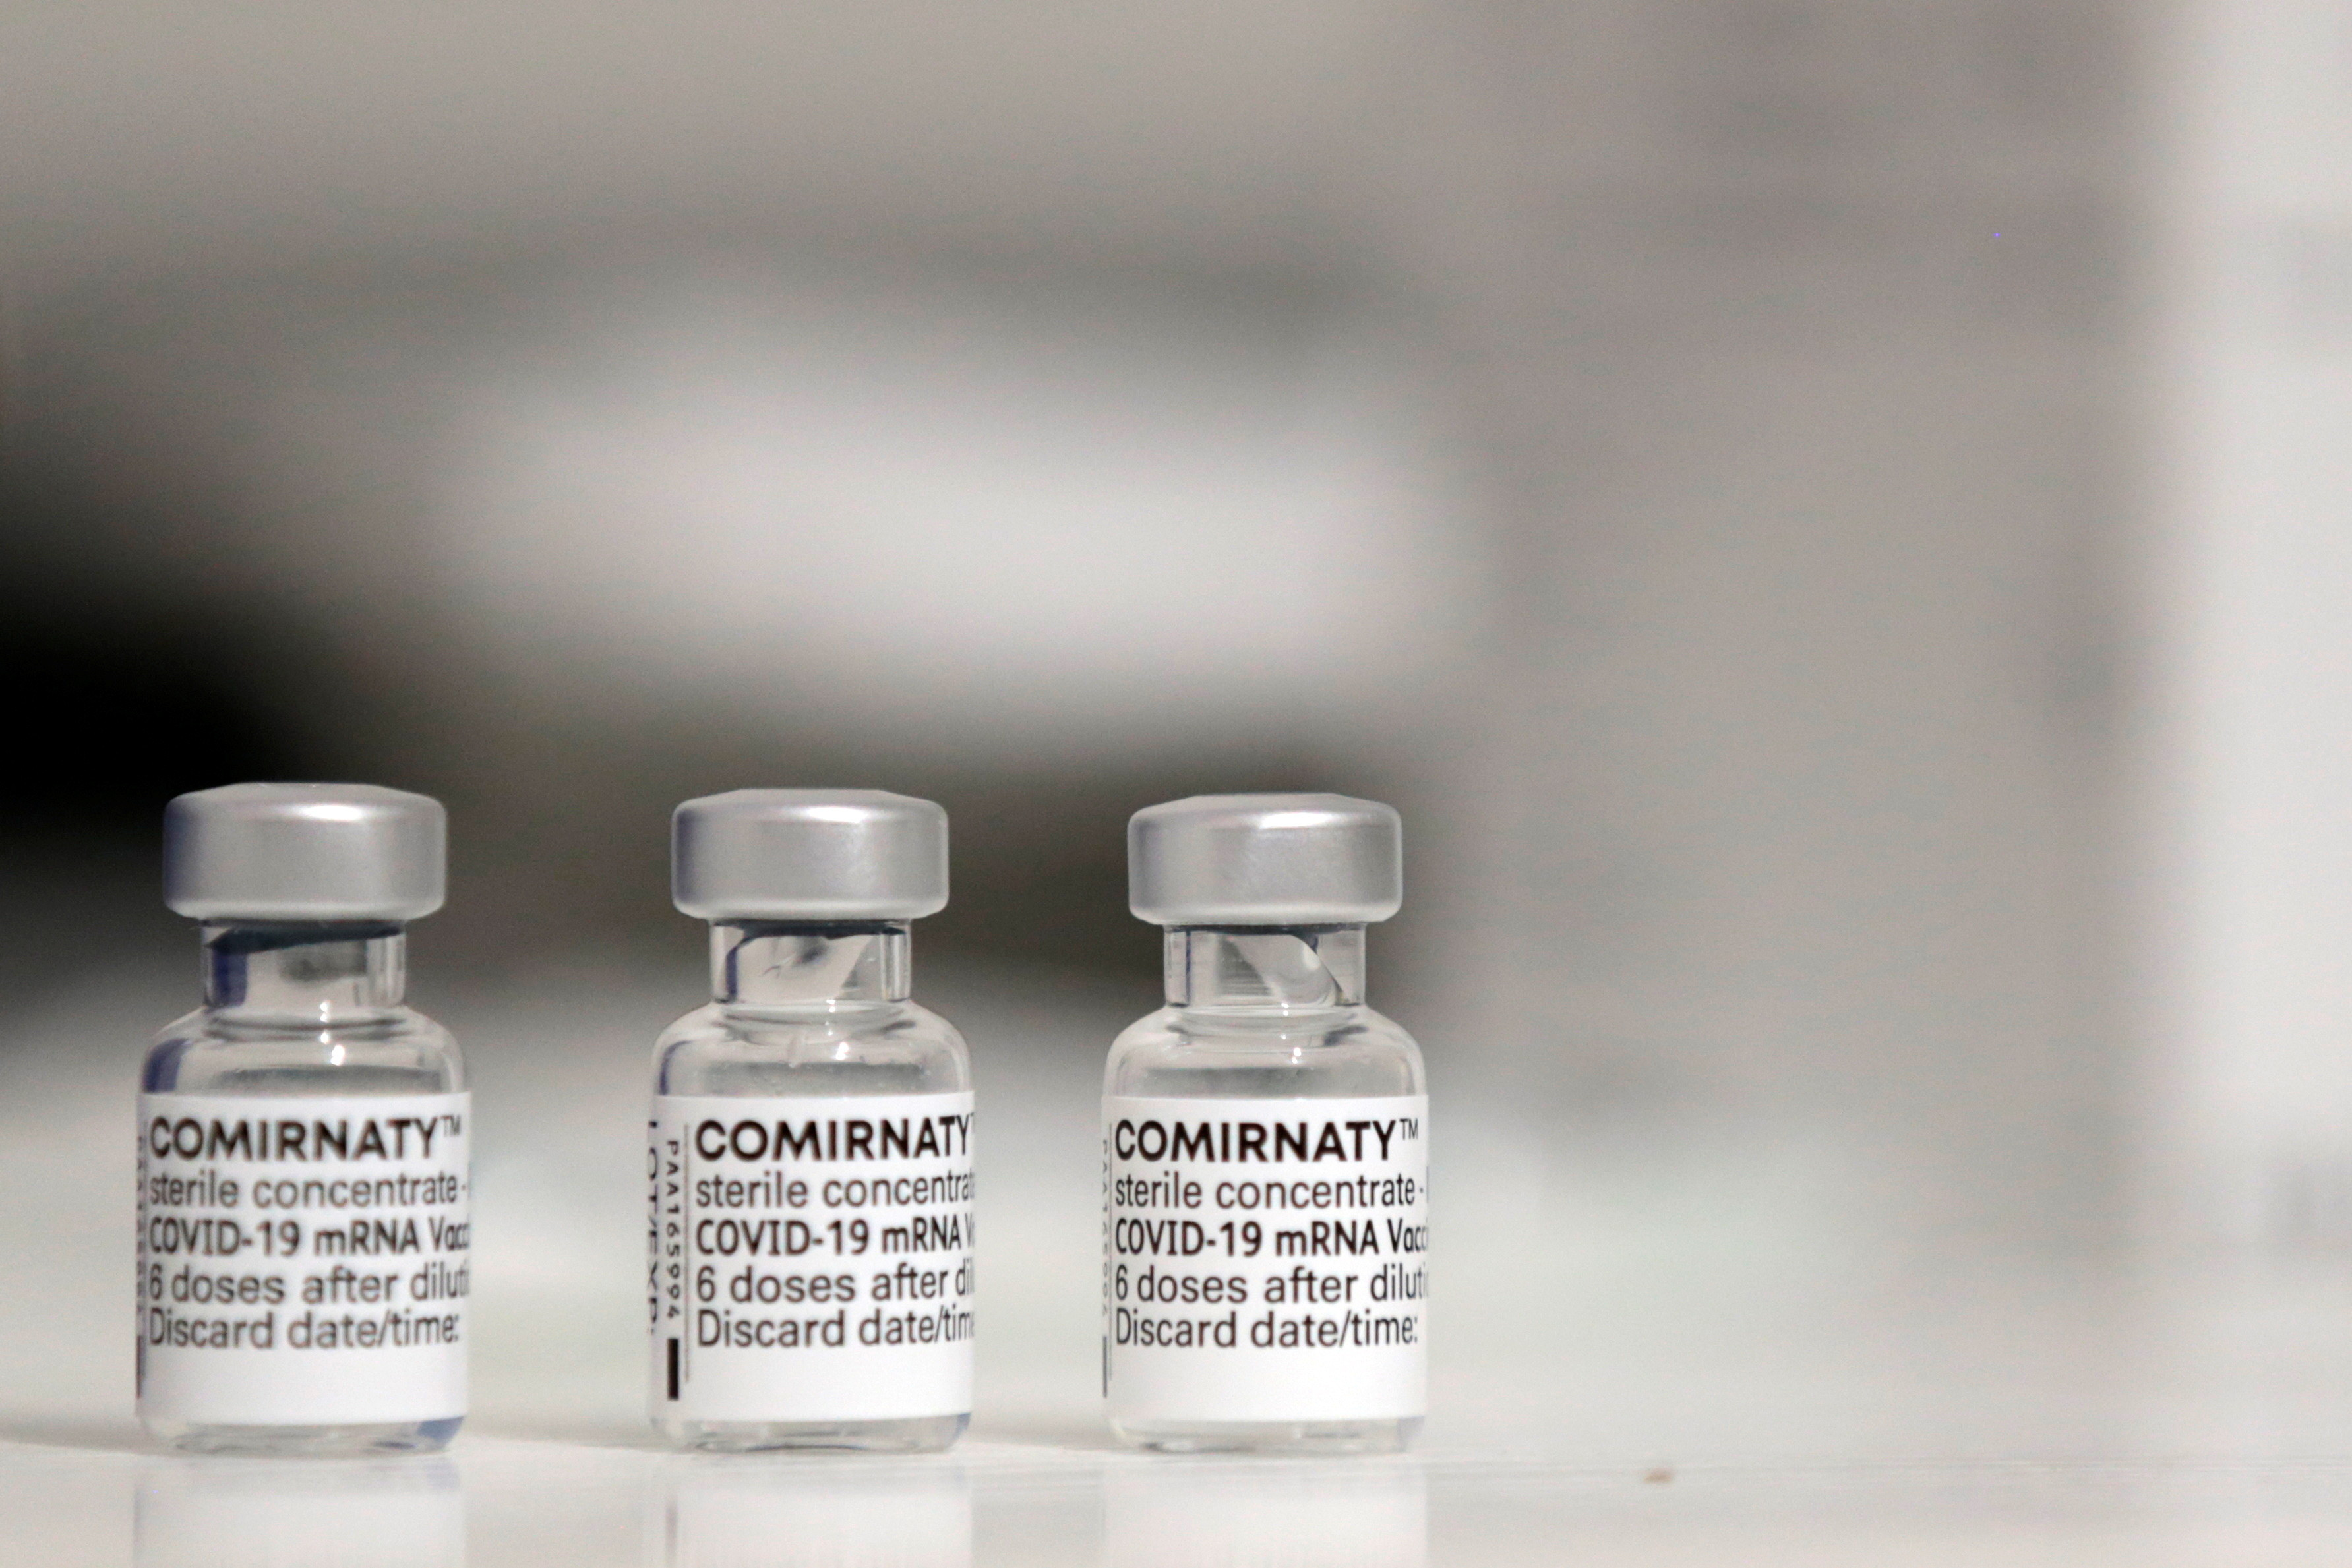 """Vials of the """"Comirnaty"""" Pfizer-BioNTech COVID-19 vaccine are seen at a coronavirus disease (COVID-19) vaccination center installated in front of Paris town hall, France, July 7, 2021. REUTERS/Sarah Meyssonnier - RC2OFO9B27A9"""